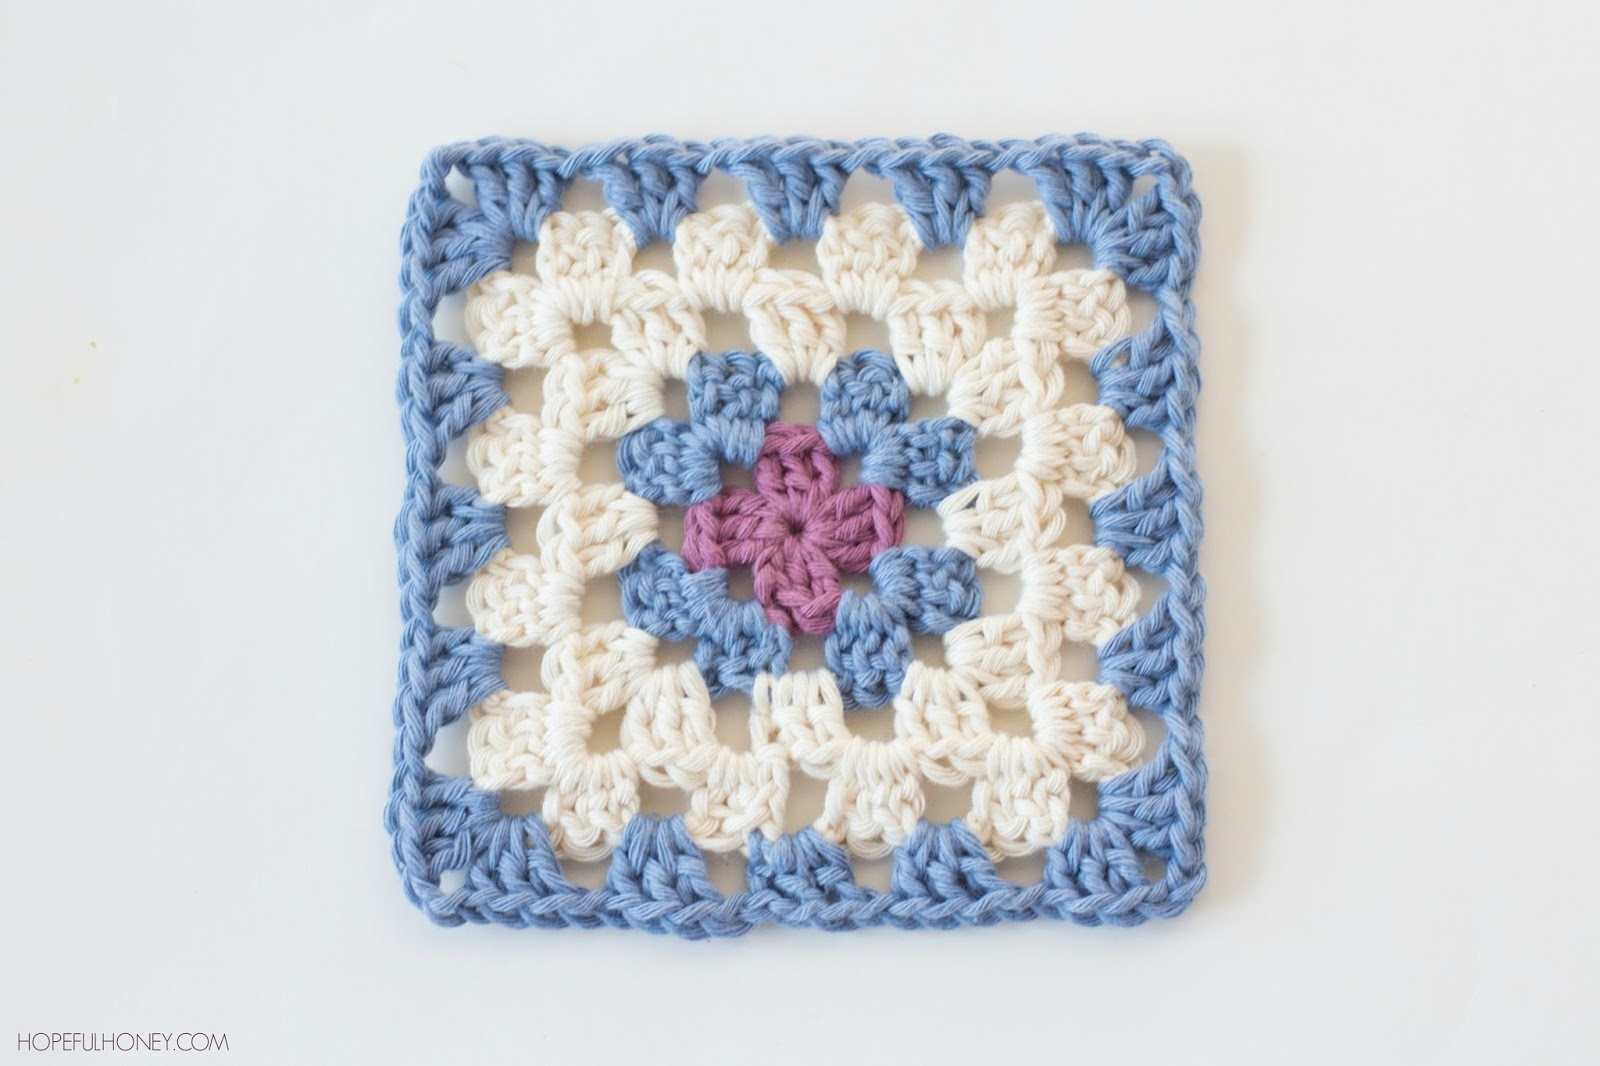 Crochet Granny Square Pattern : Hopeful Honey Craft, Crochet, Create: Classic Granny ...